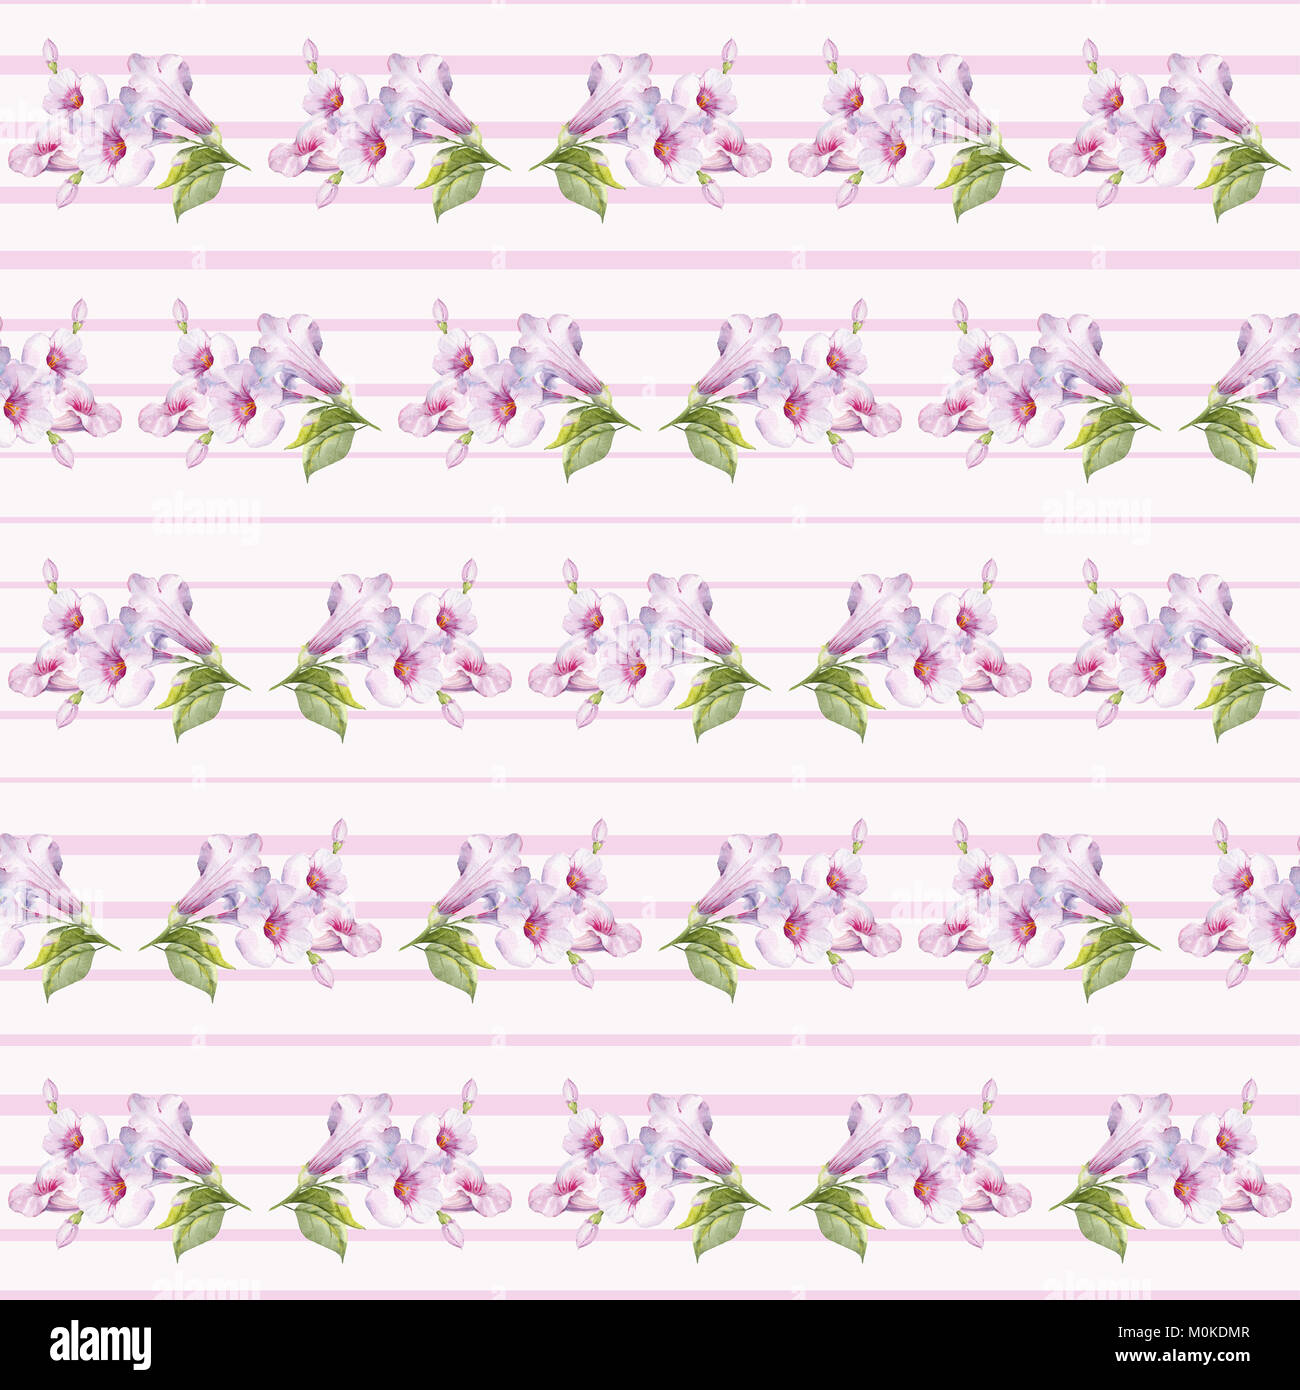 Floral pattern in pale purple tones. Stock Photo